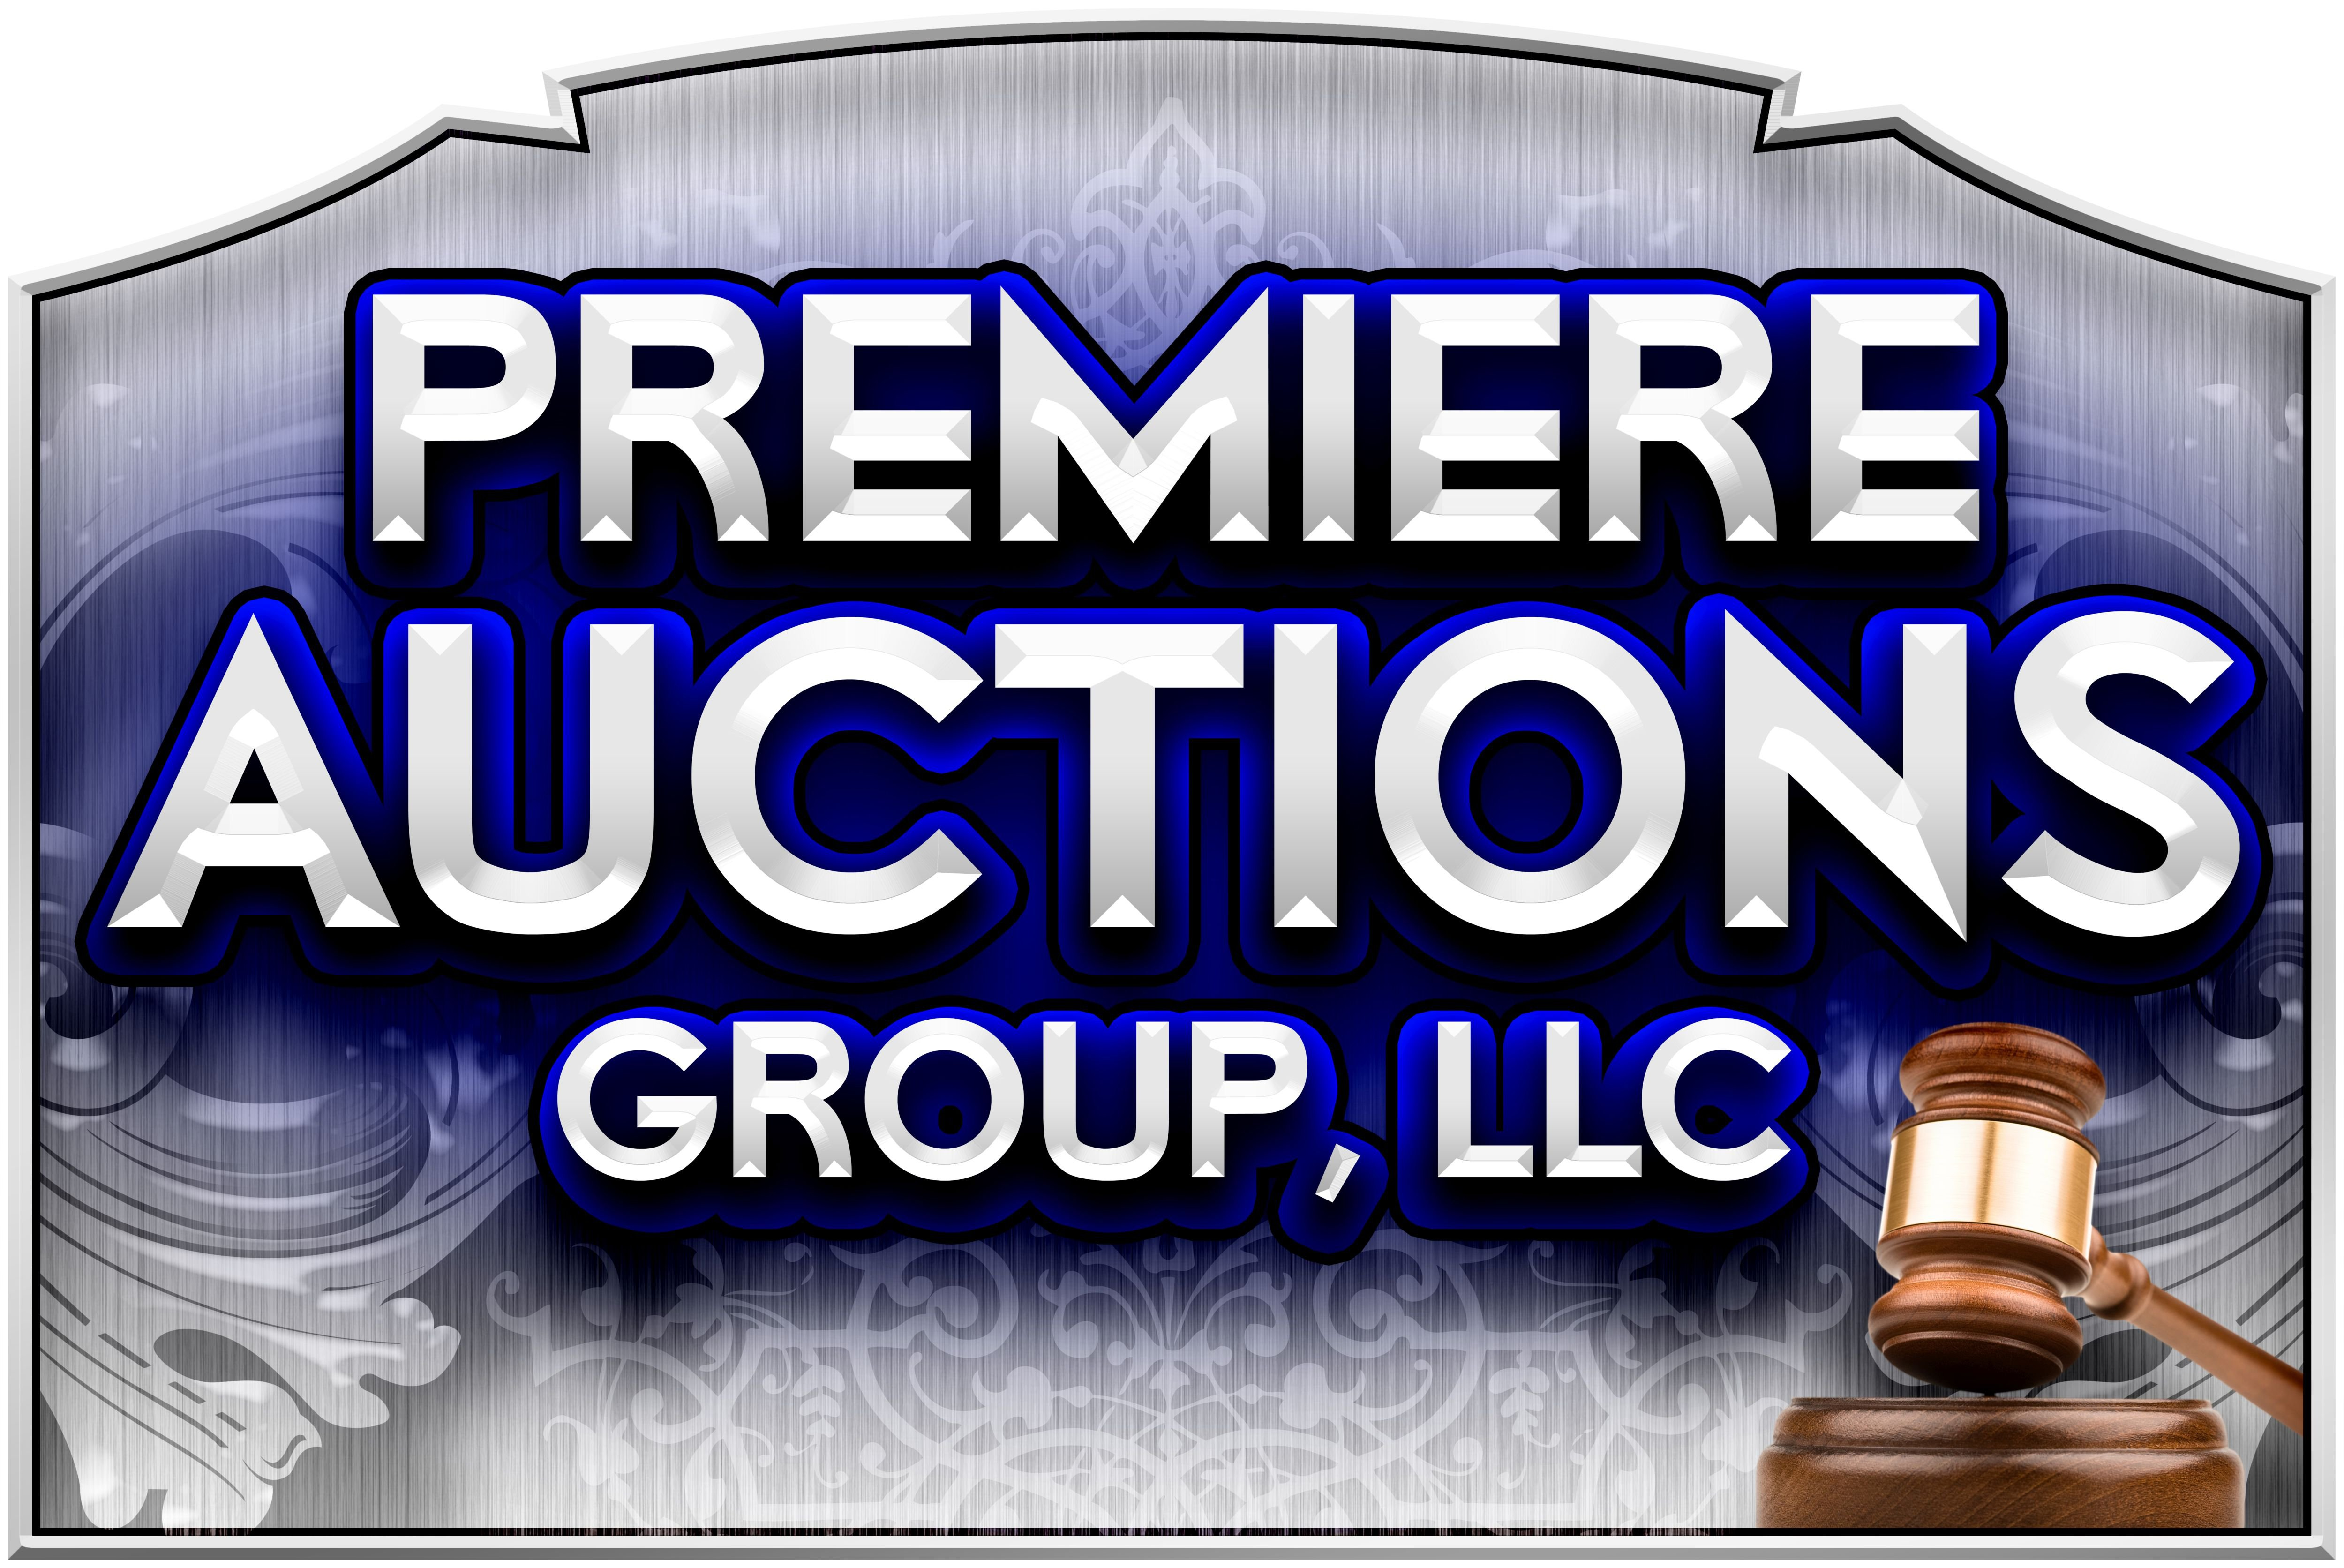 Bennett's Premiere Auctions Group, LLC